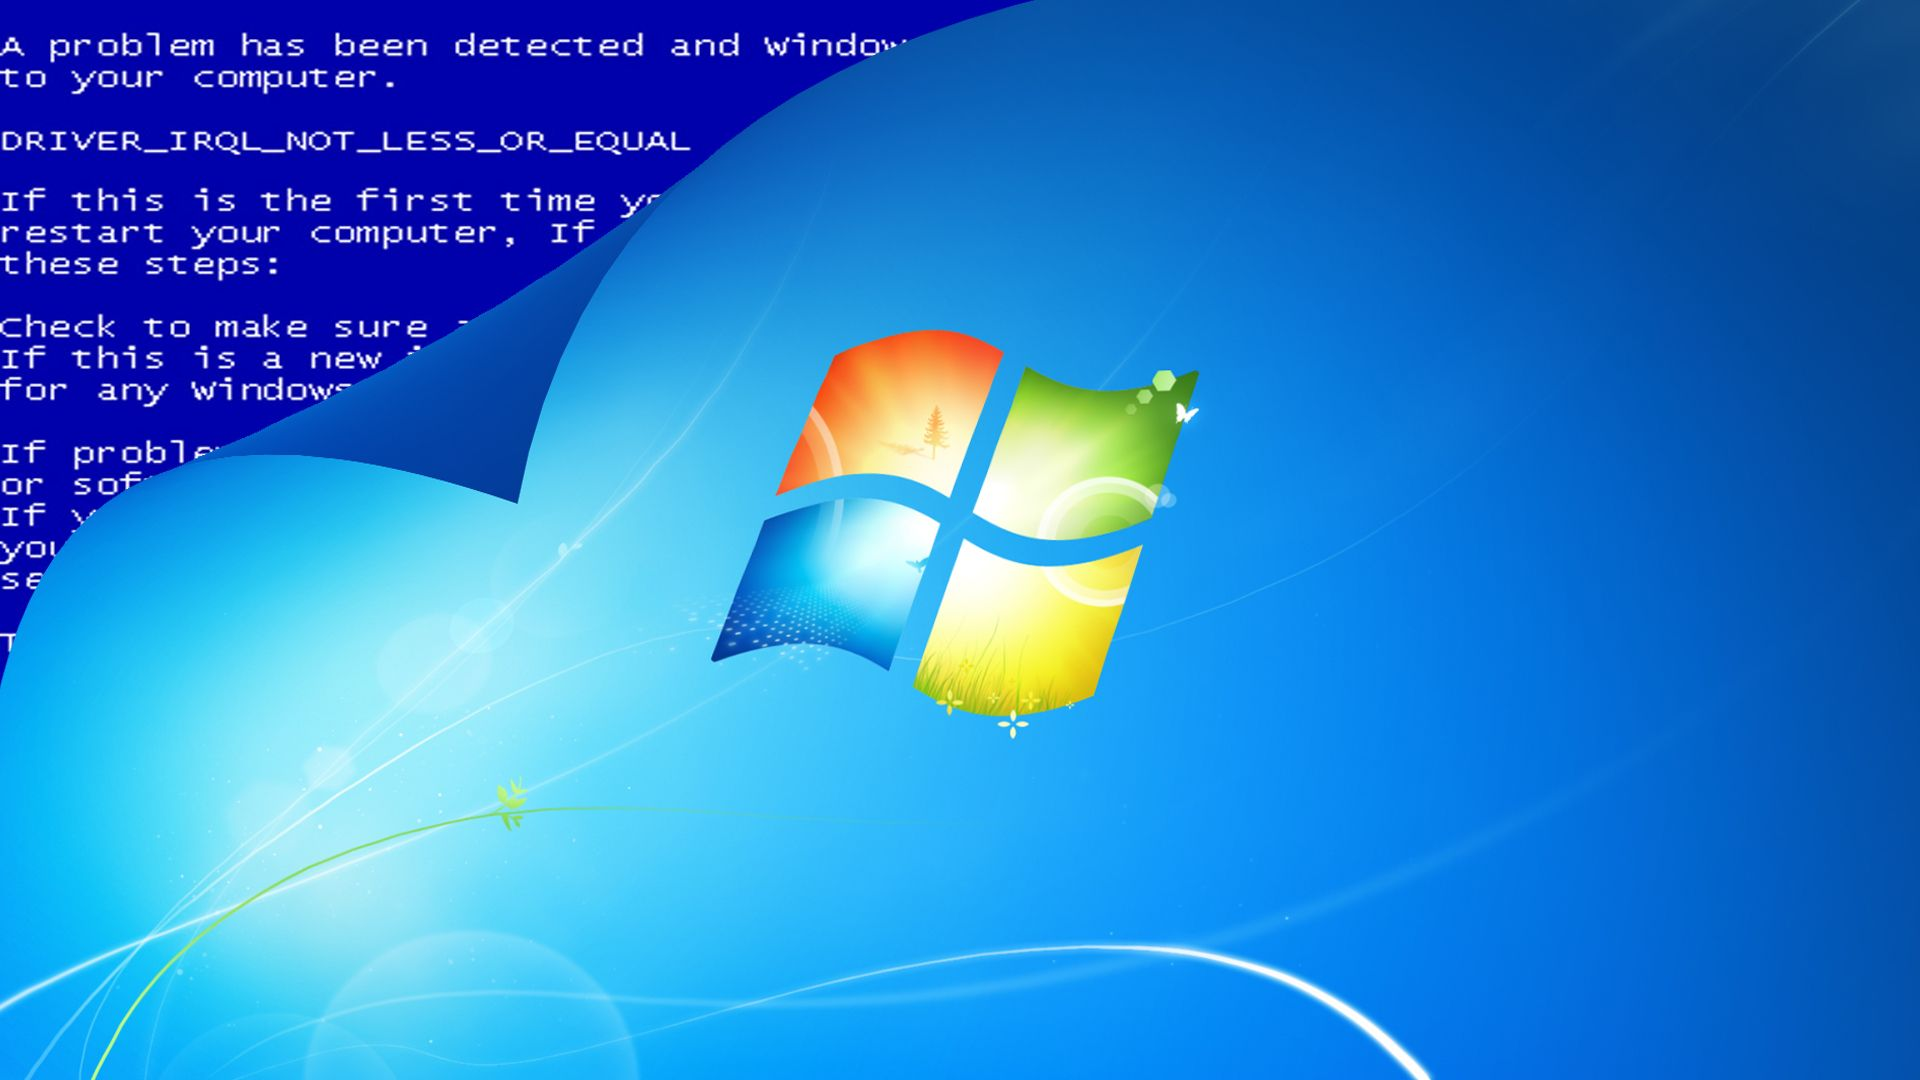 44 Bsod Wallpaper 1920x1080 On Wallpapersafari